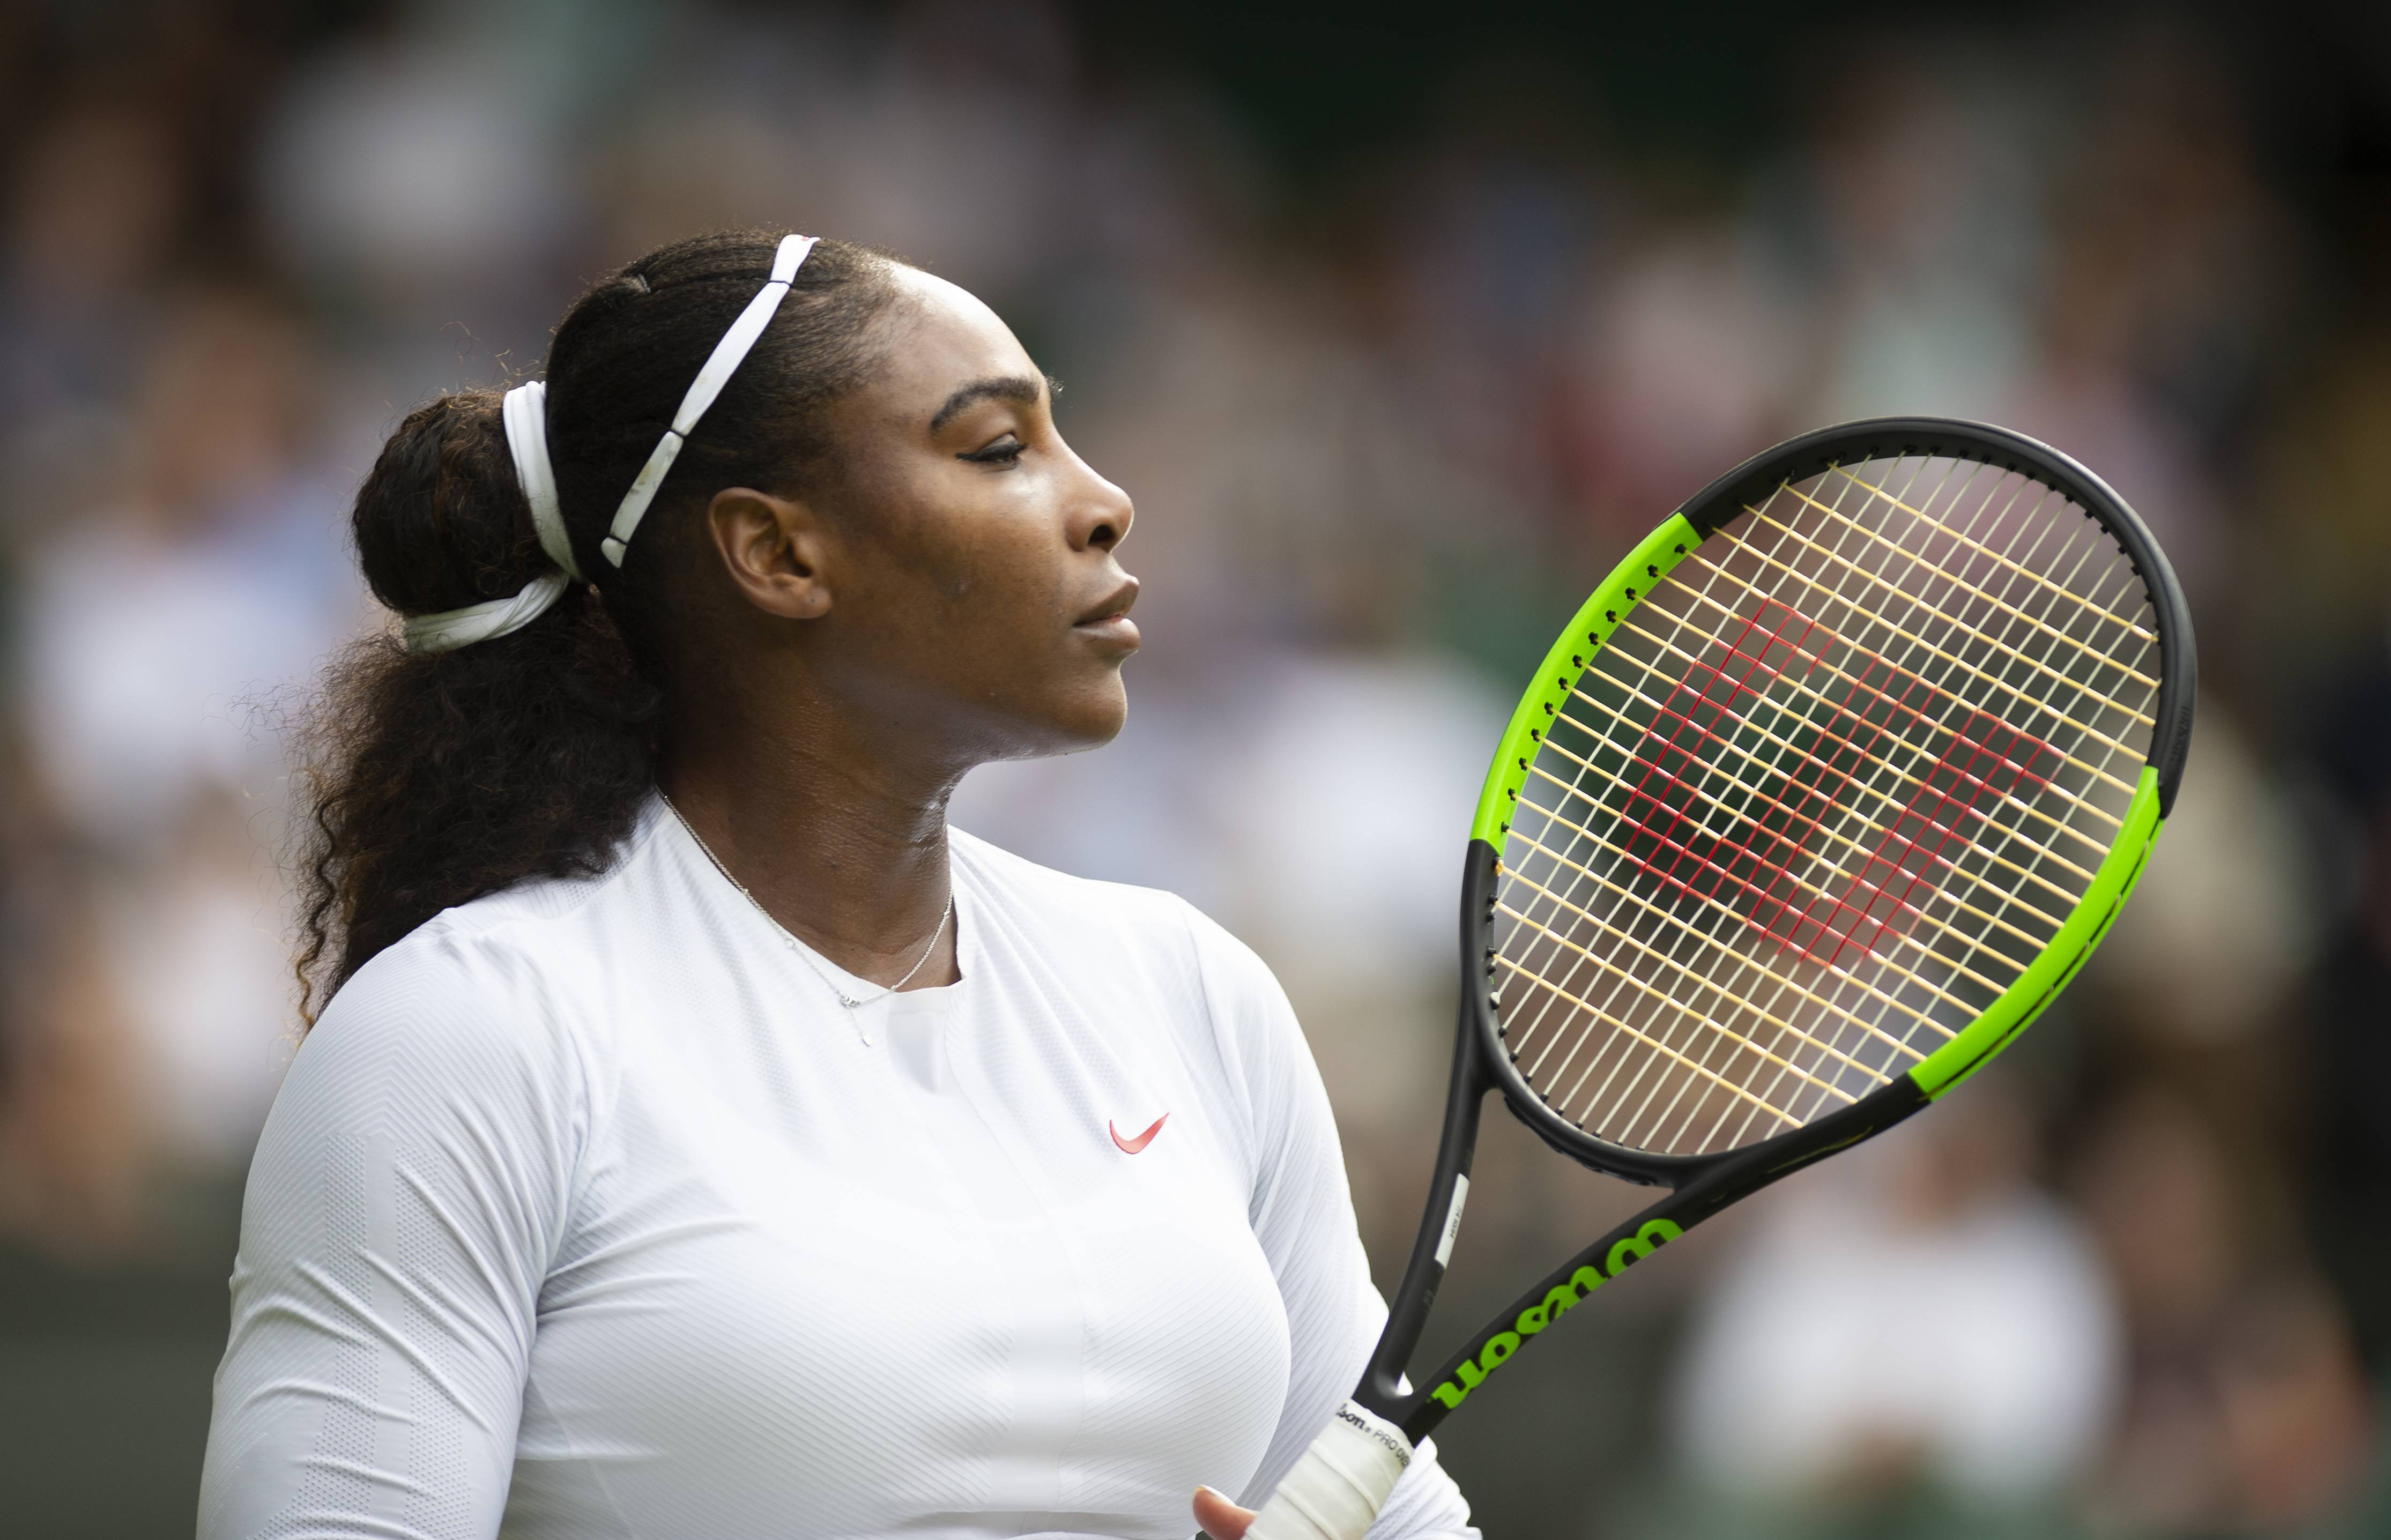 Serena Williams Says Postpartum Emotions Contributed in Historic Tennis Loss